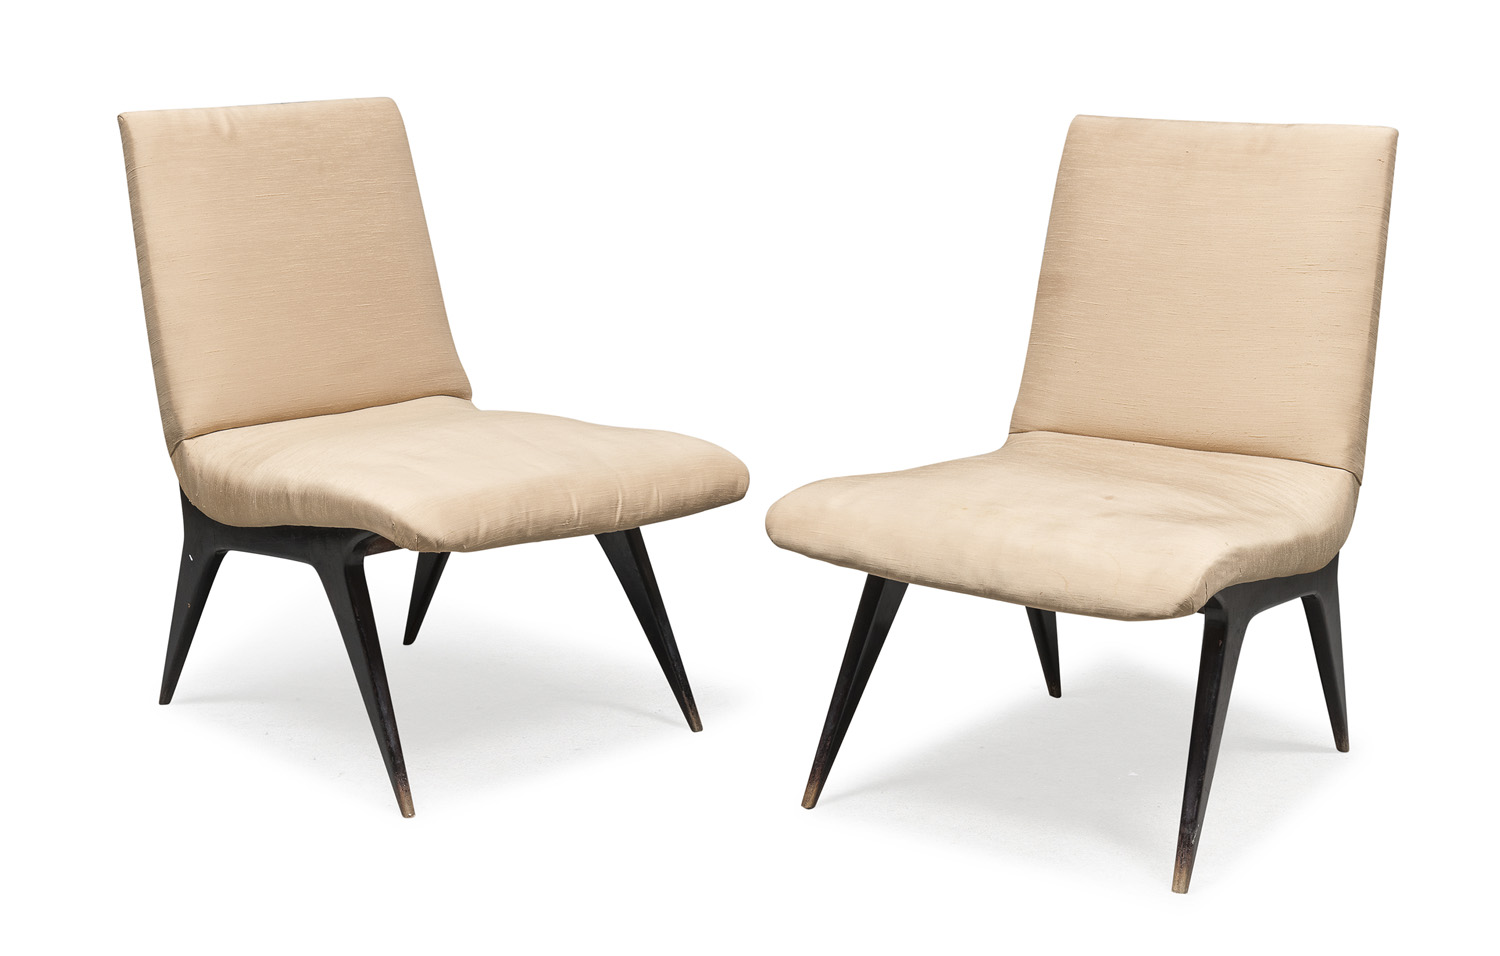 PAIR OF WOOD CHAIRS ULRICH LATE 1940s